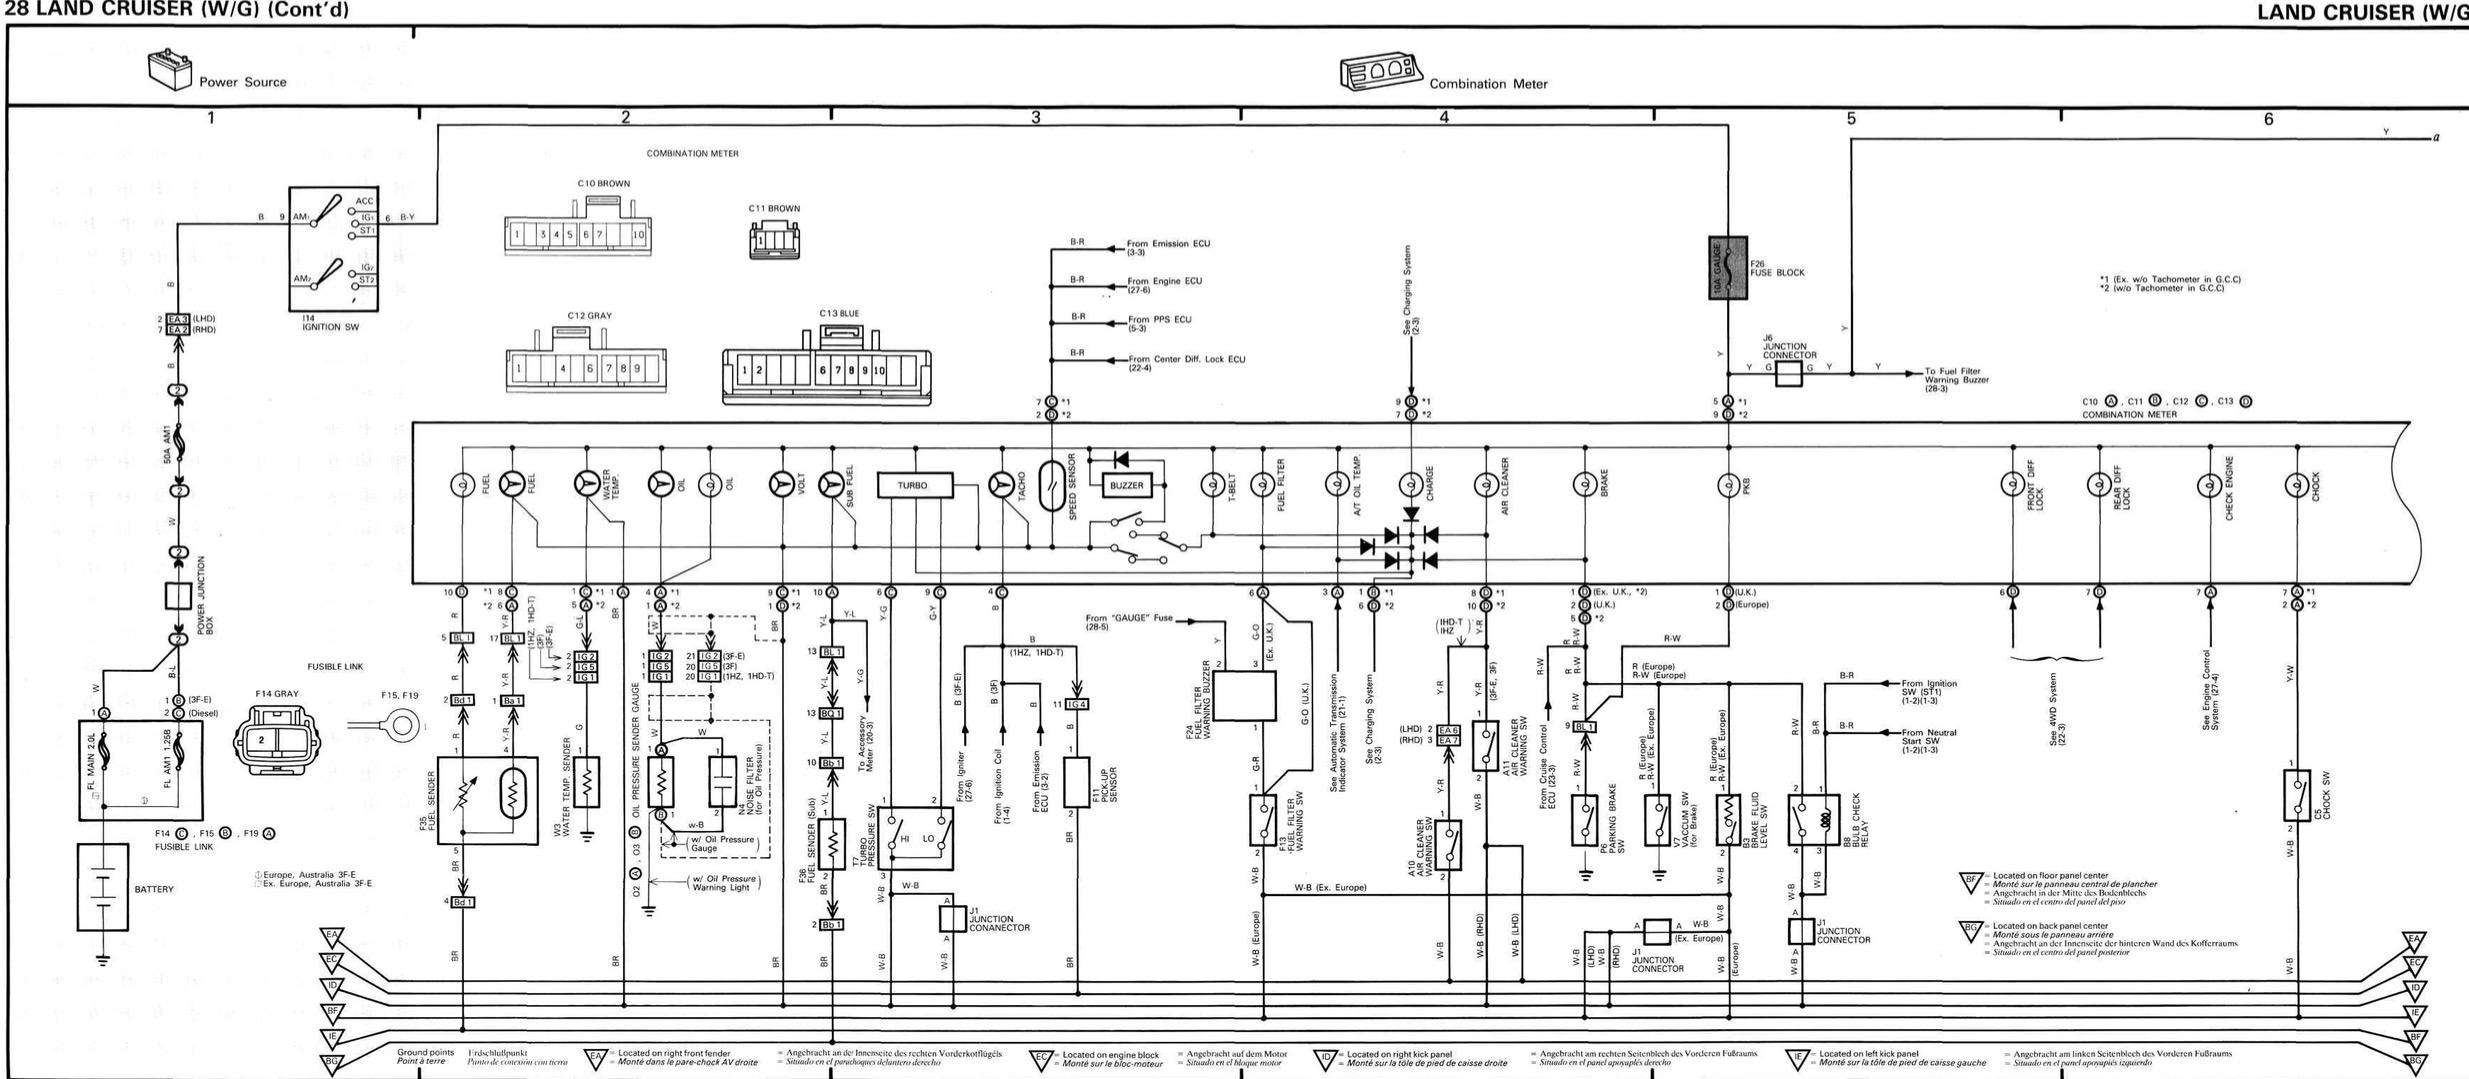 oil pressure sender wiring schematic? land cruiser club oil pressure warning light wiring diagram at bayanpartner.co